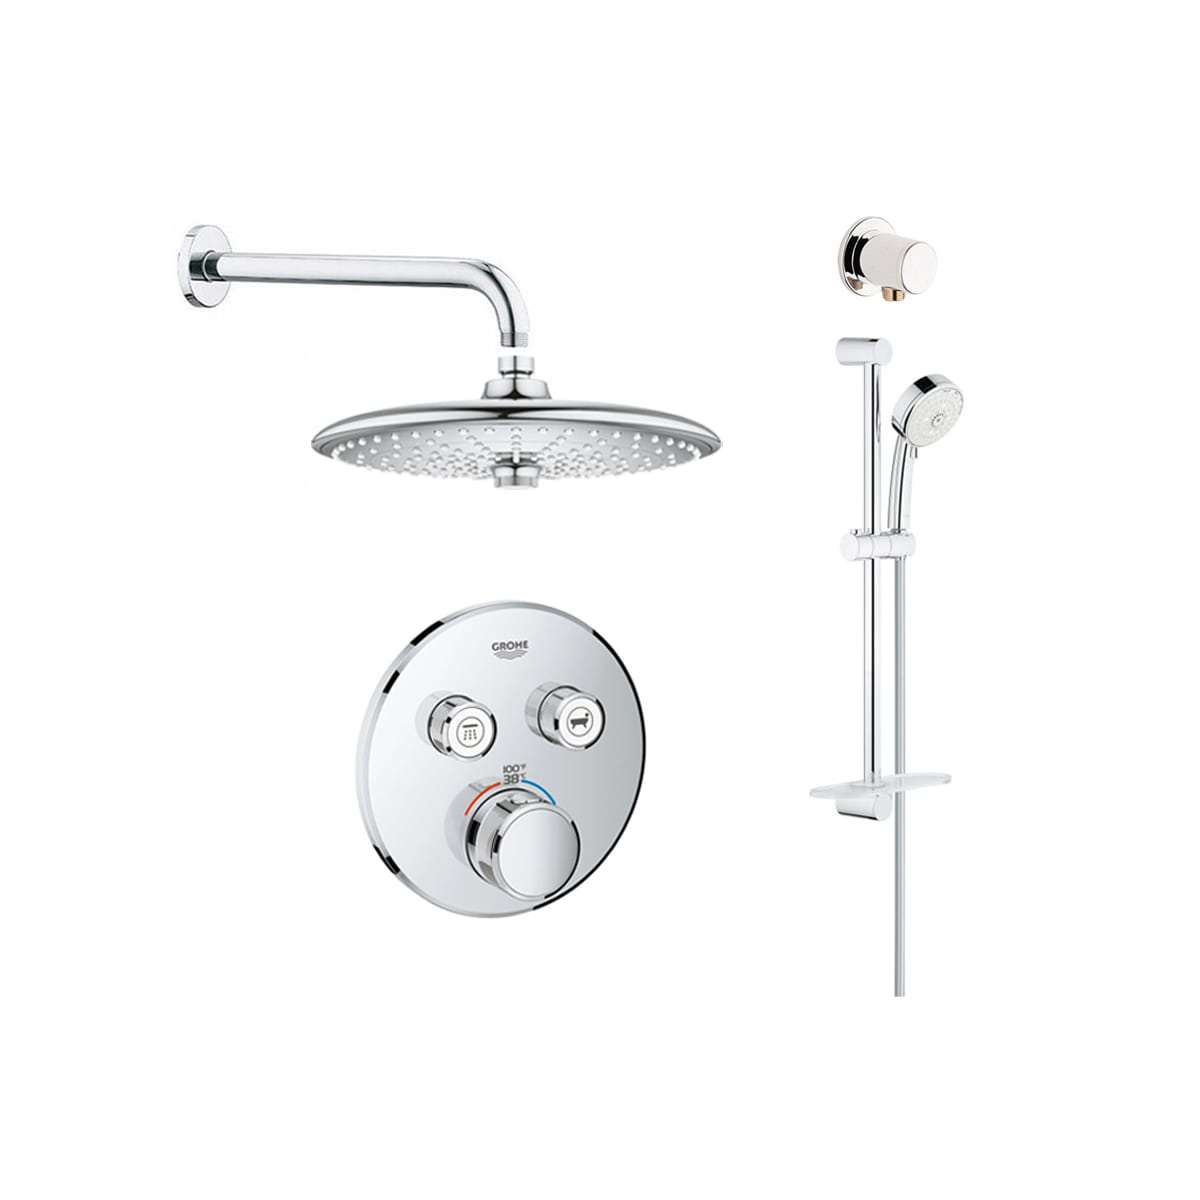 Grohe Gss Grohtherm Cir 04